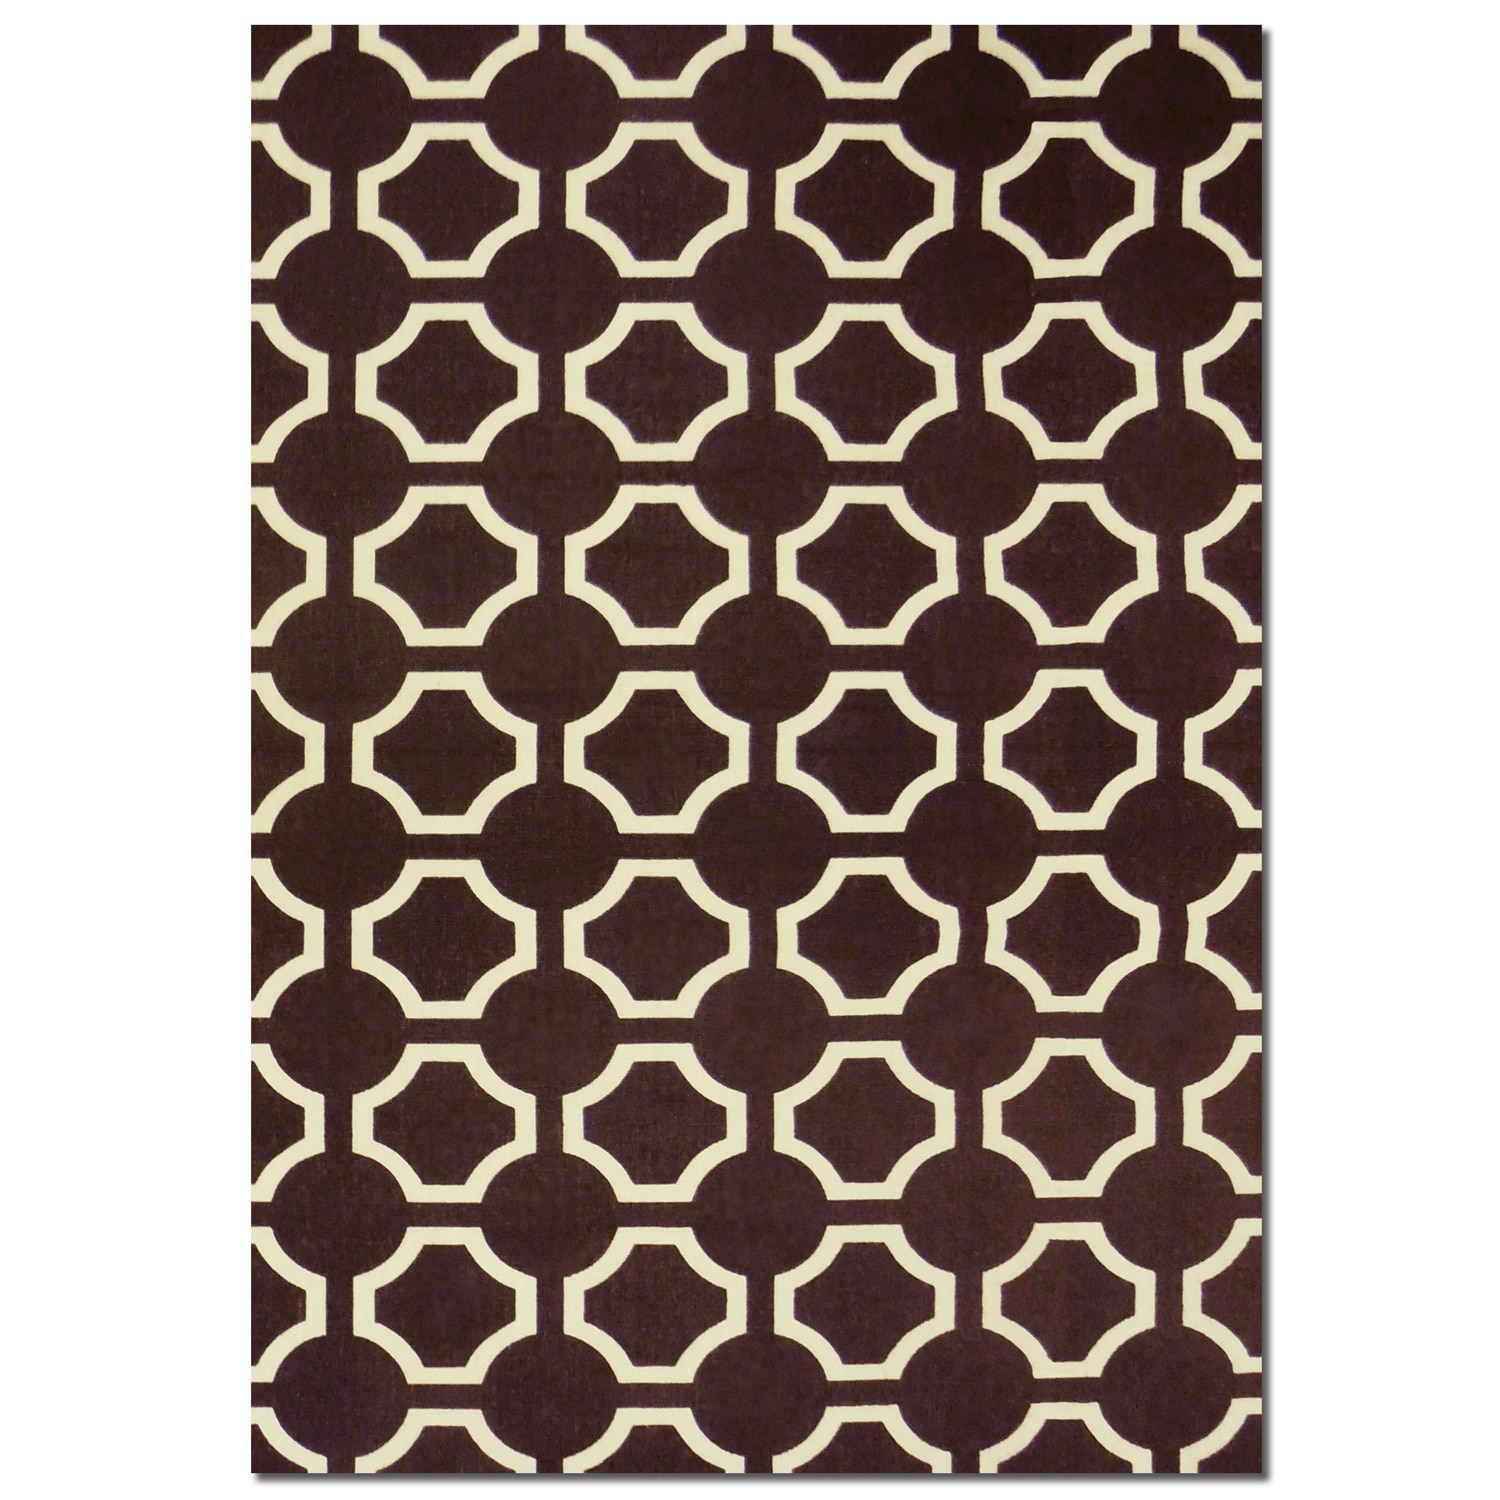 Salon Brown Semi-Circle Area Rug (5' x 8')